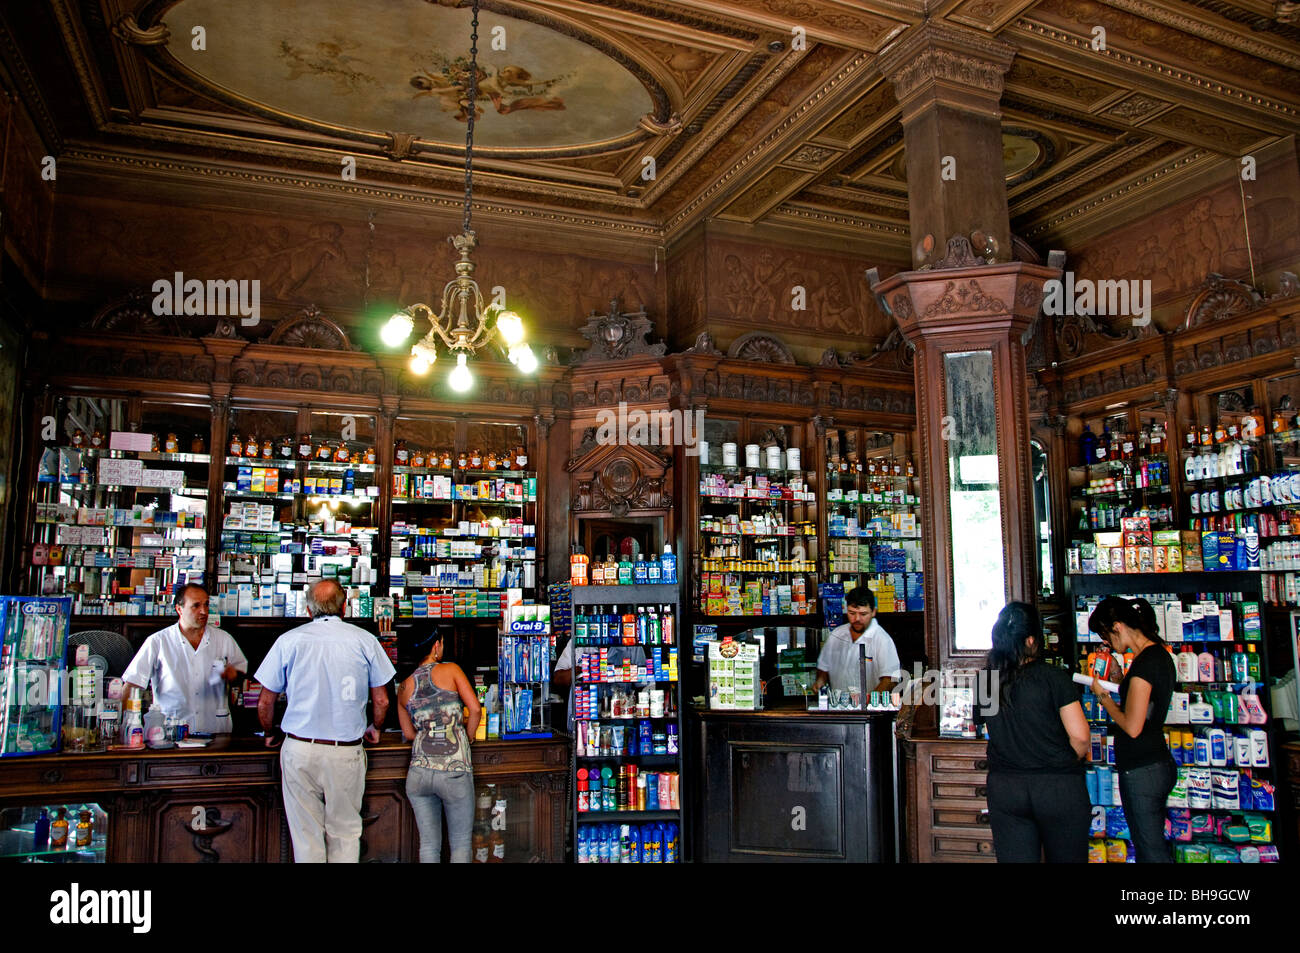 Buenos Aires pharmacist chemist druggist pharmacy Argentina Town City - Stock Image